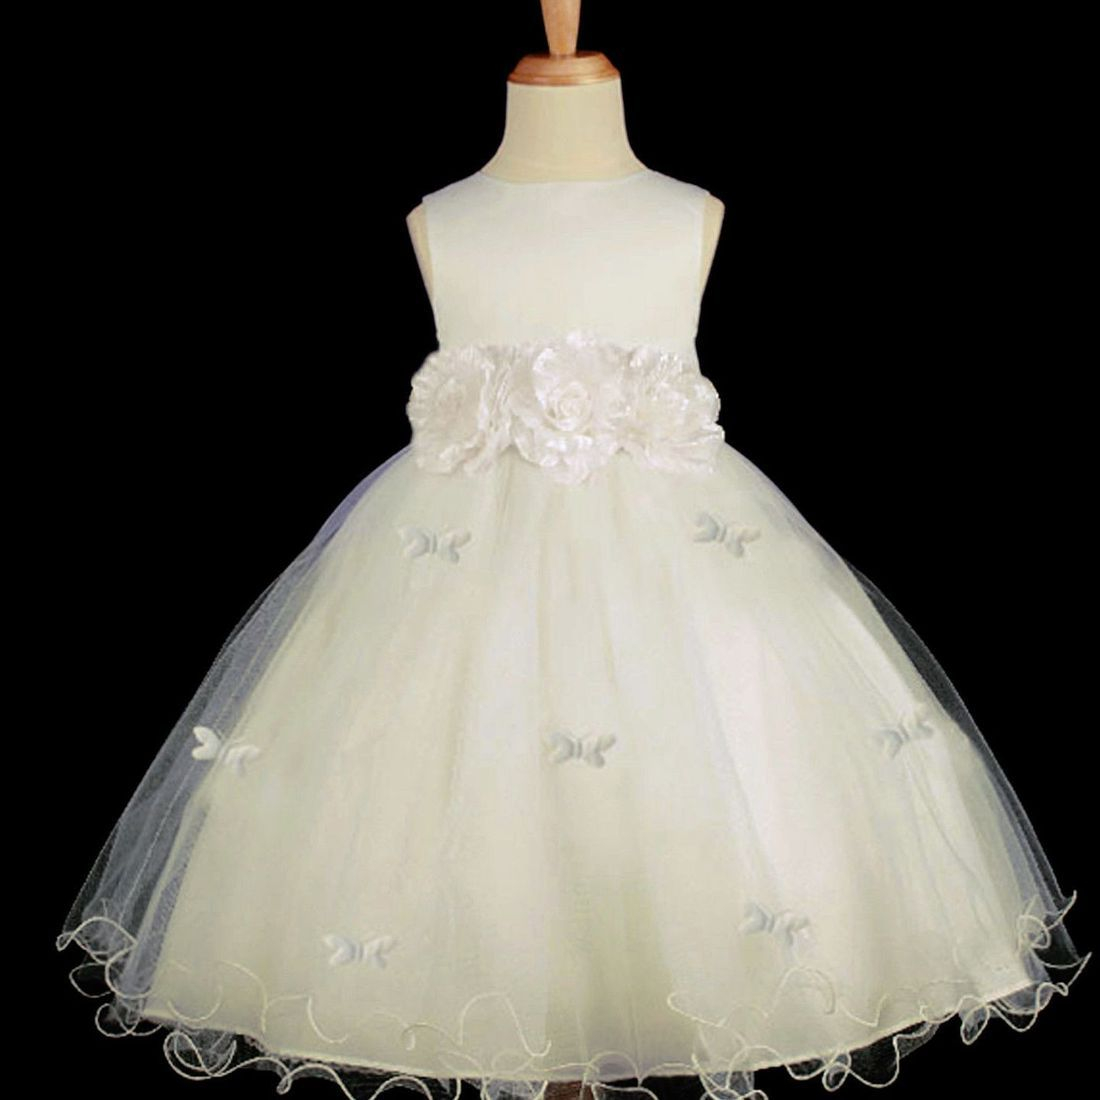 Off-the-peg flower girl dress